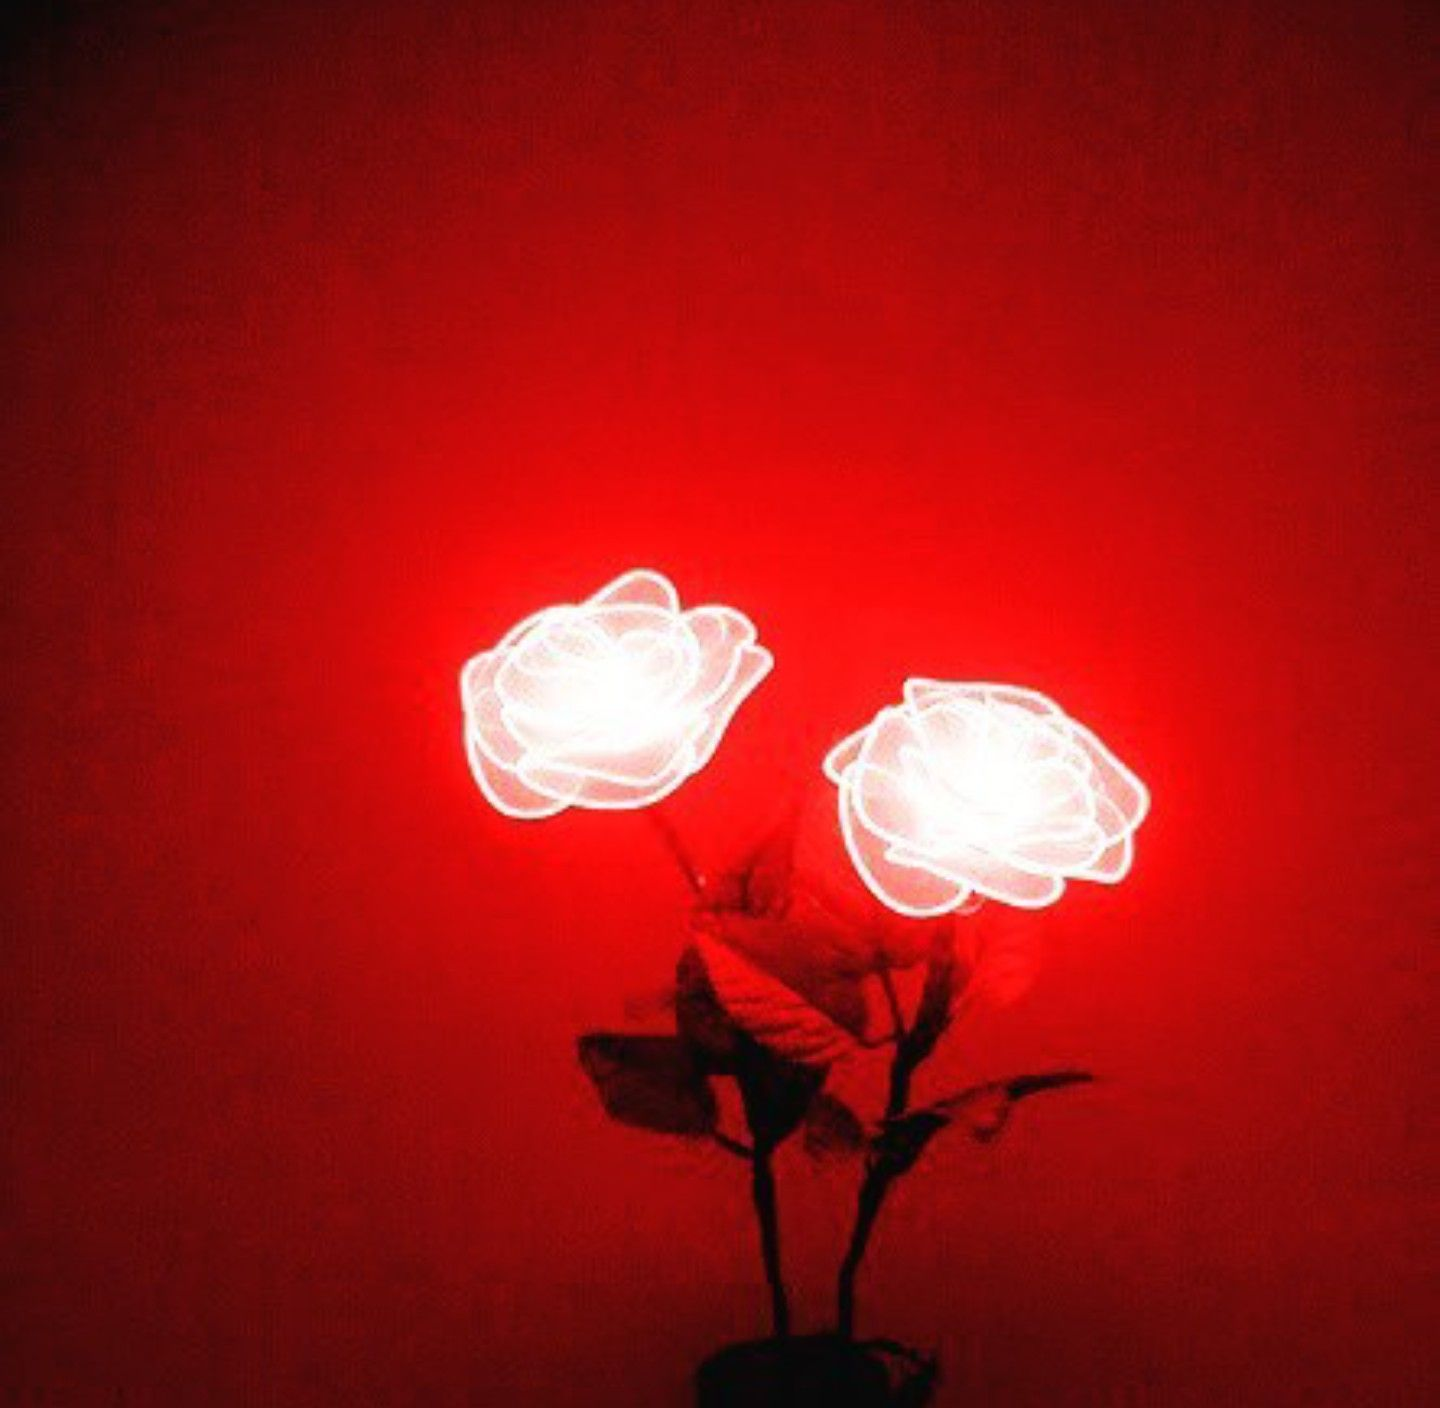 neon light roses Red aesthetic, Pink aesthetic